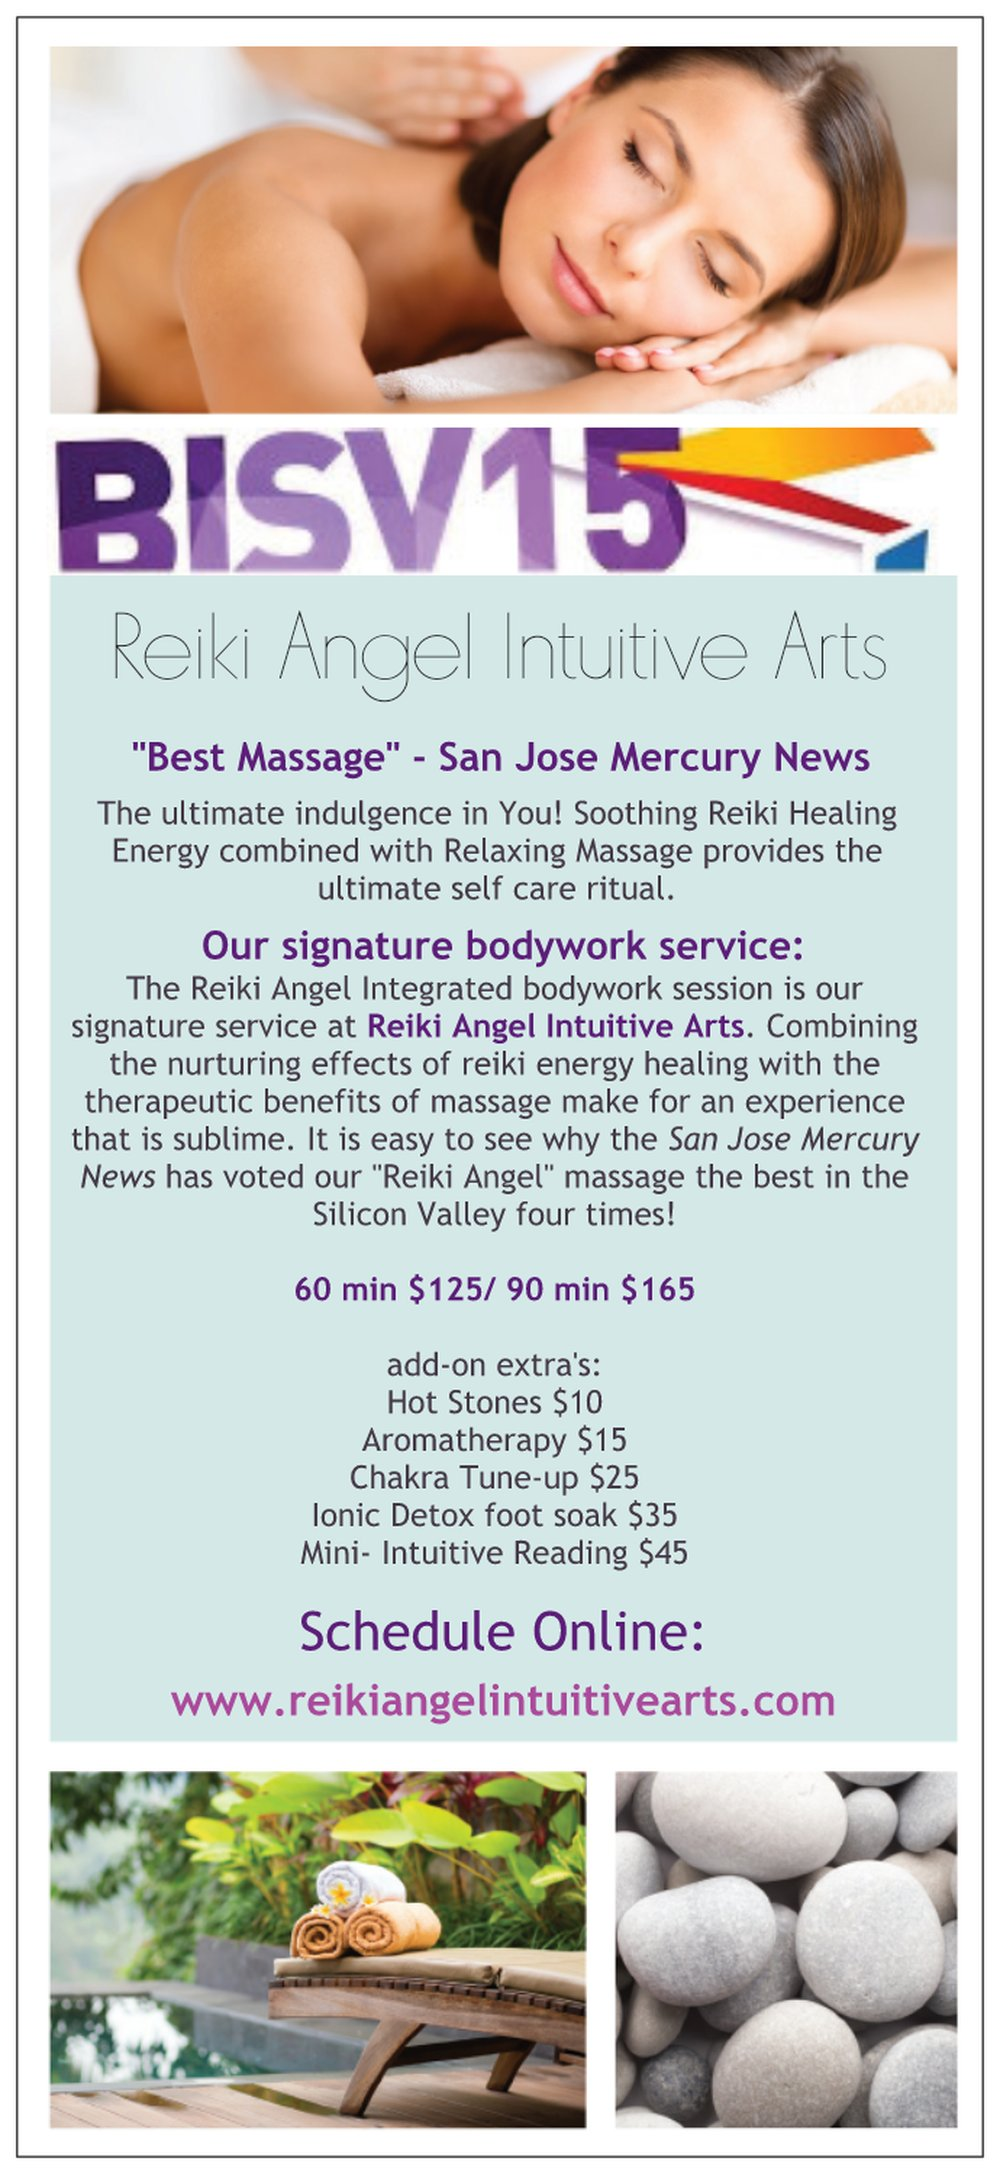 """Best Massage"" in Silicon Valley 2015- San Jose Mercury News!"